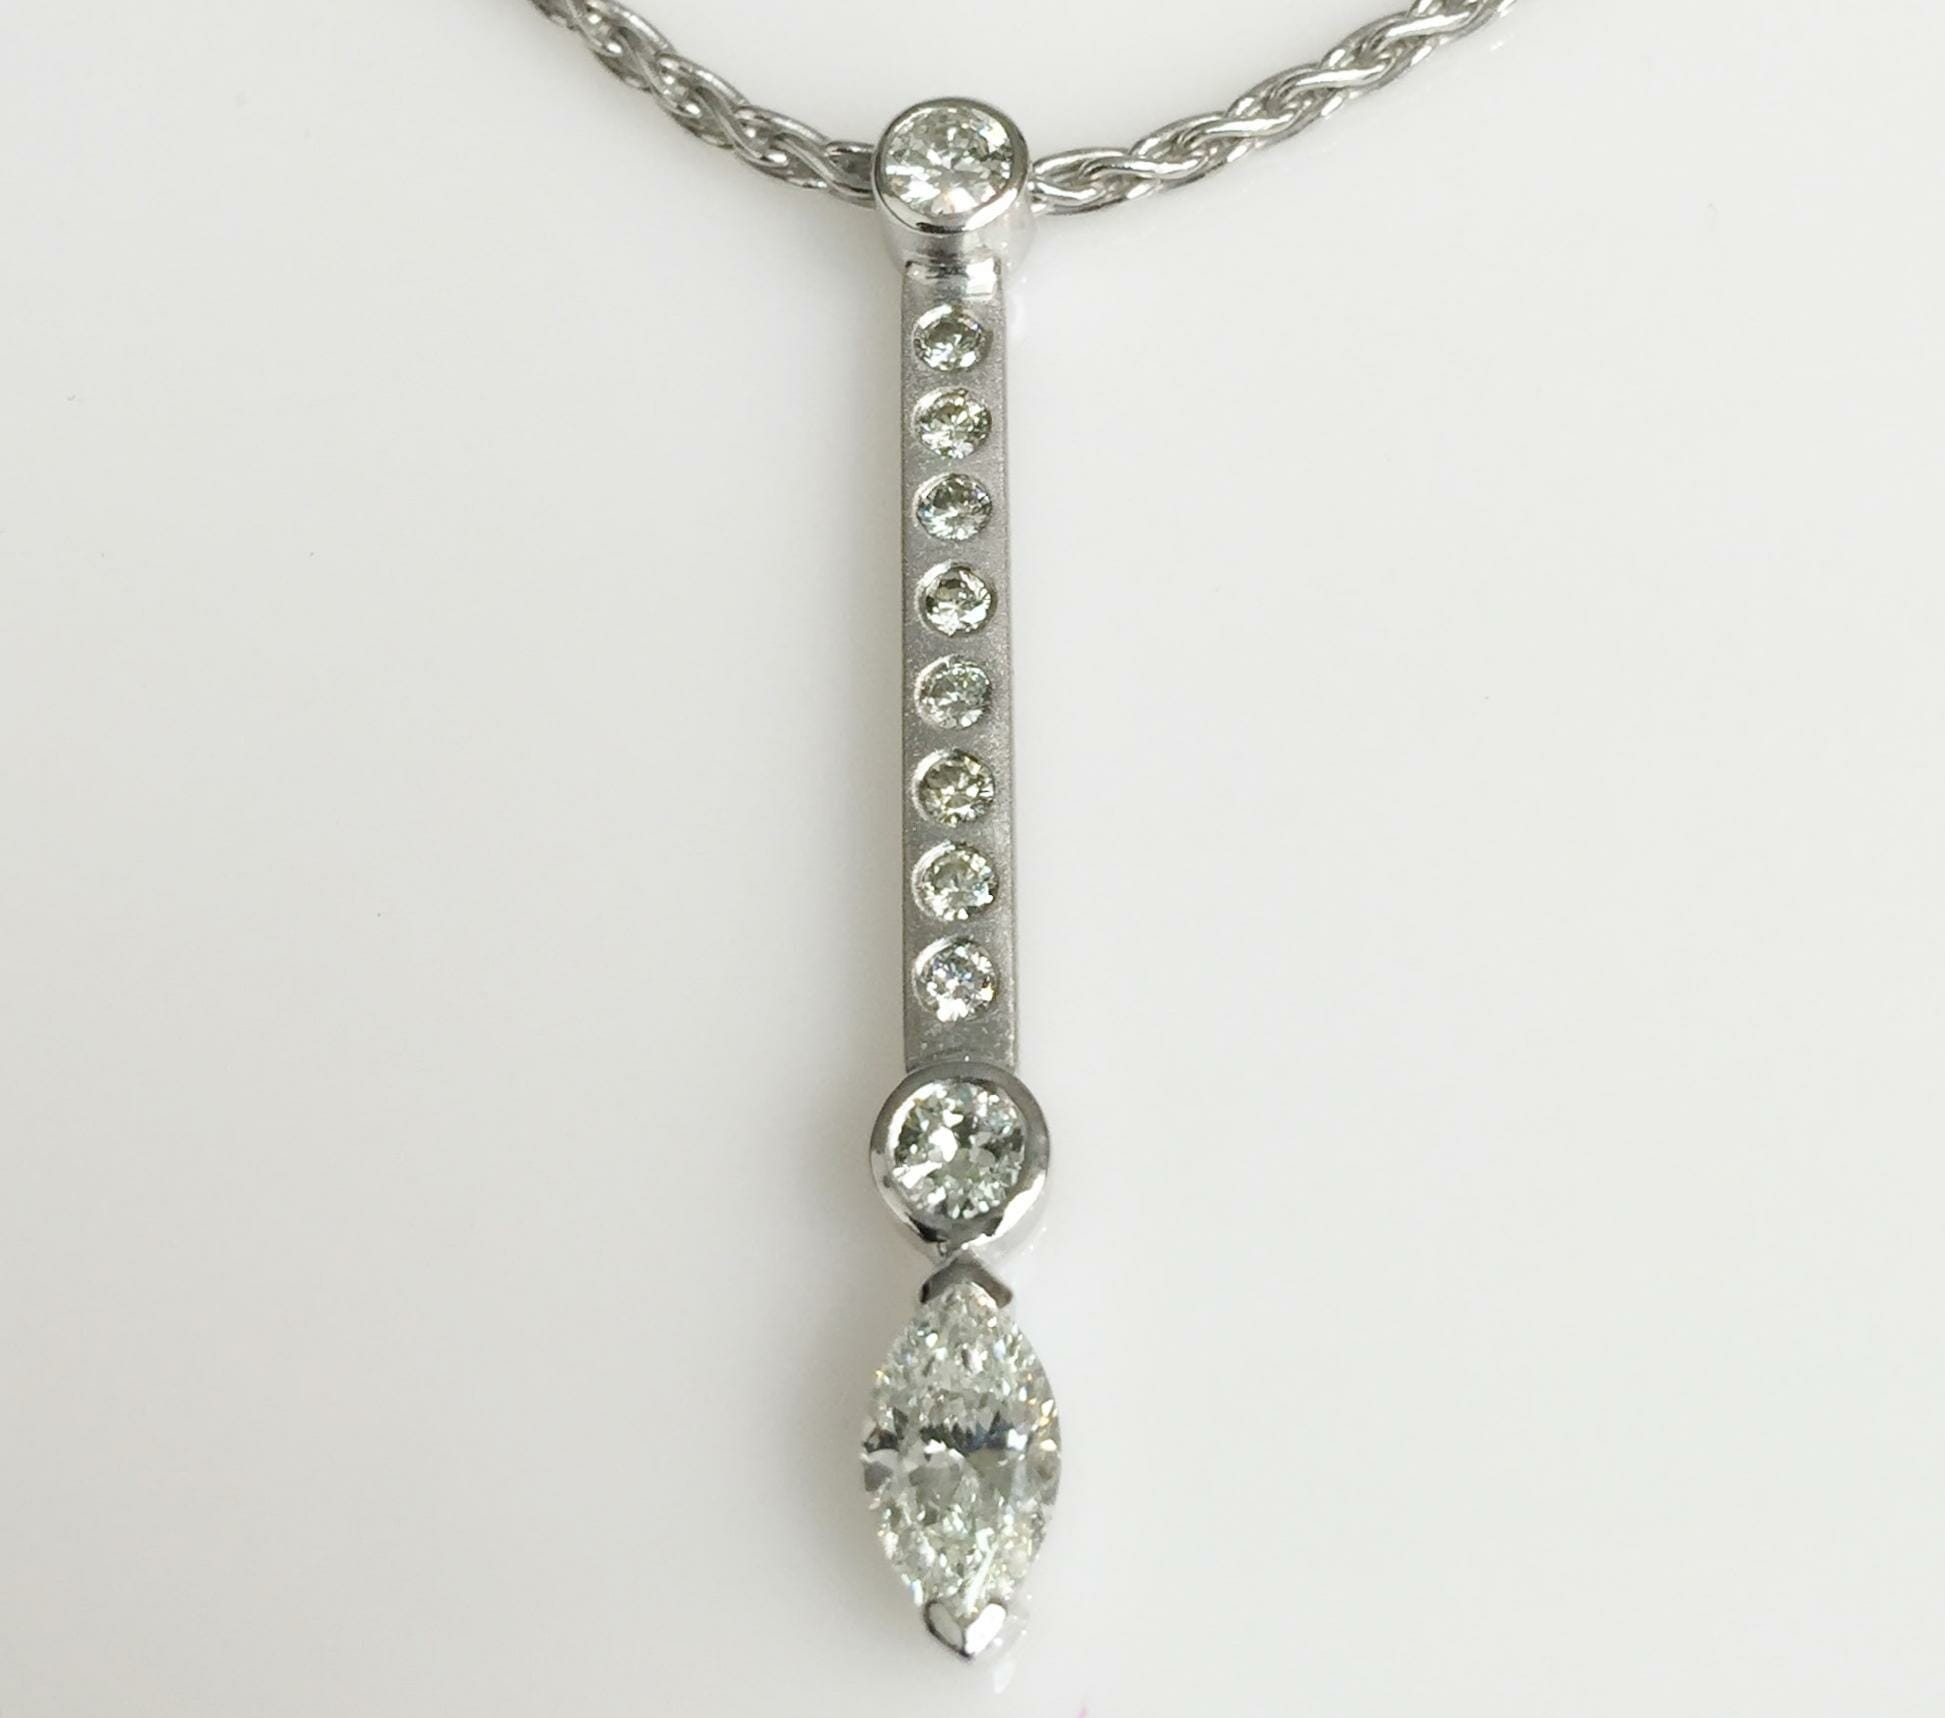 jewelry custom products spexton necklace diamond textured marquise pendant